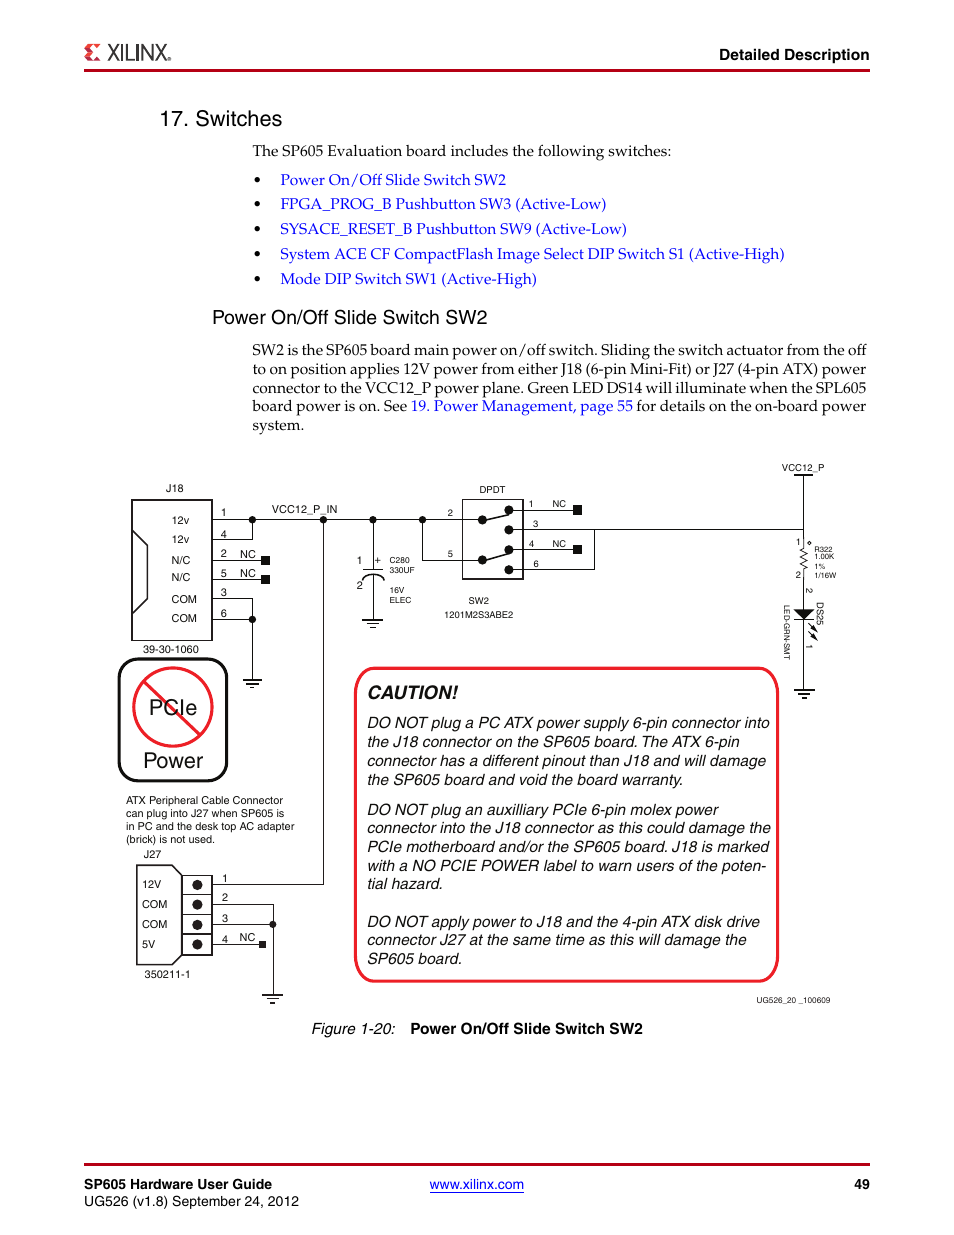 Switches, Power on/off slide switch sw2, Pcie power | Xilinx